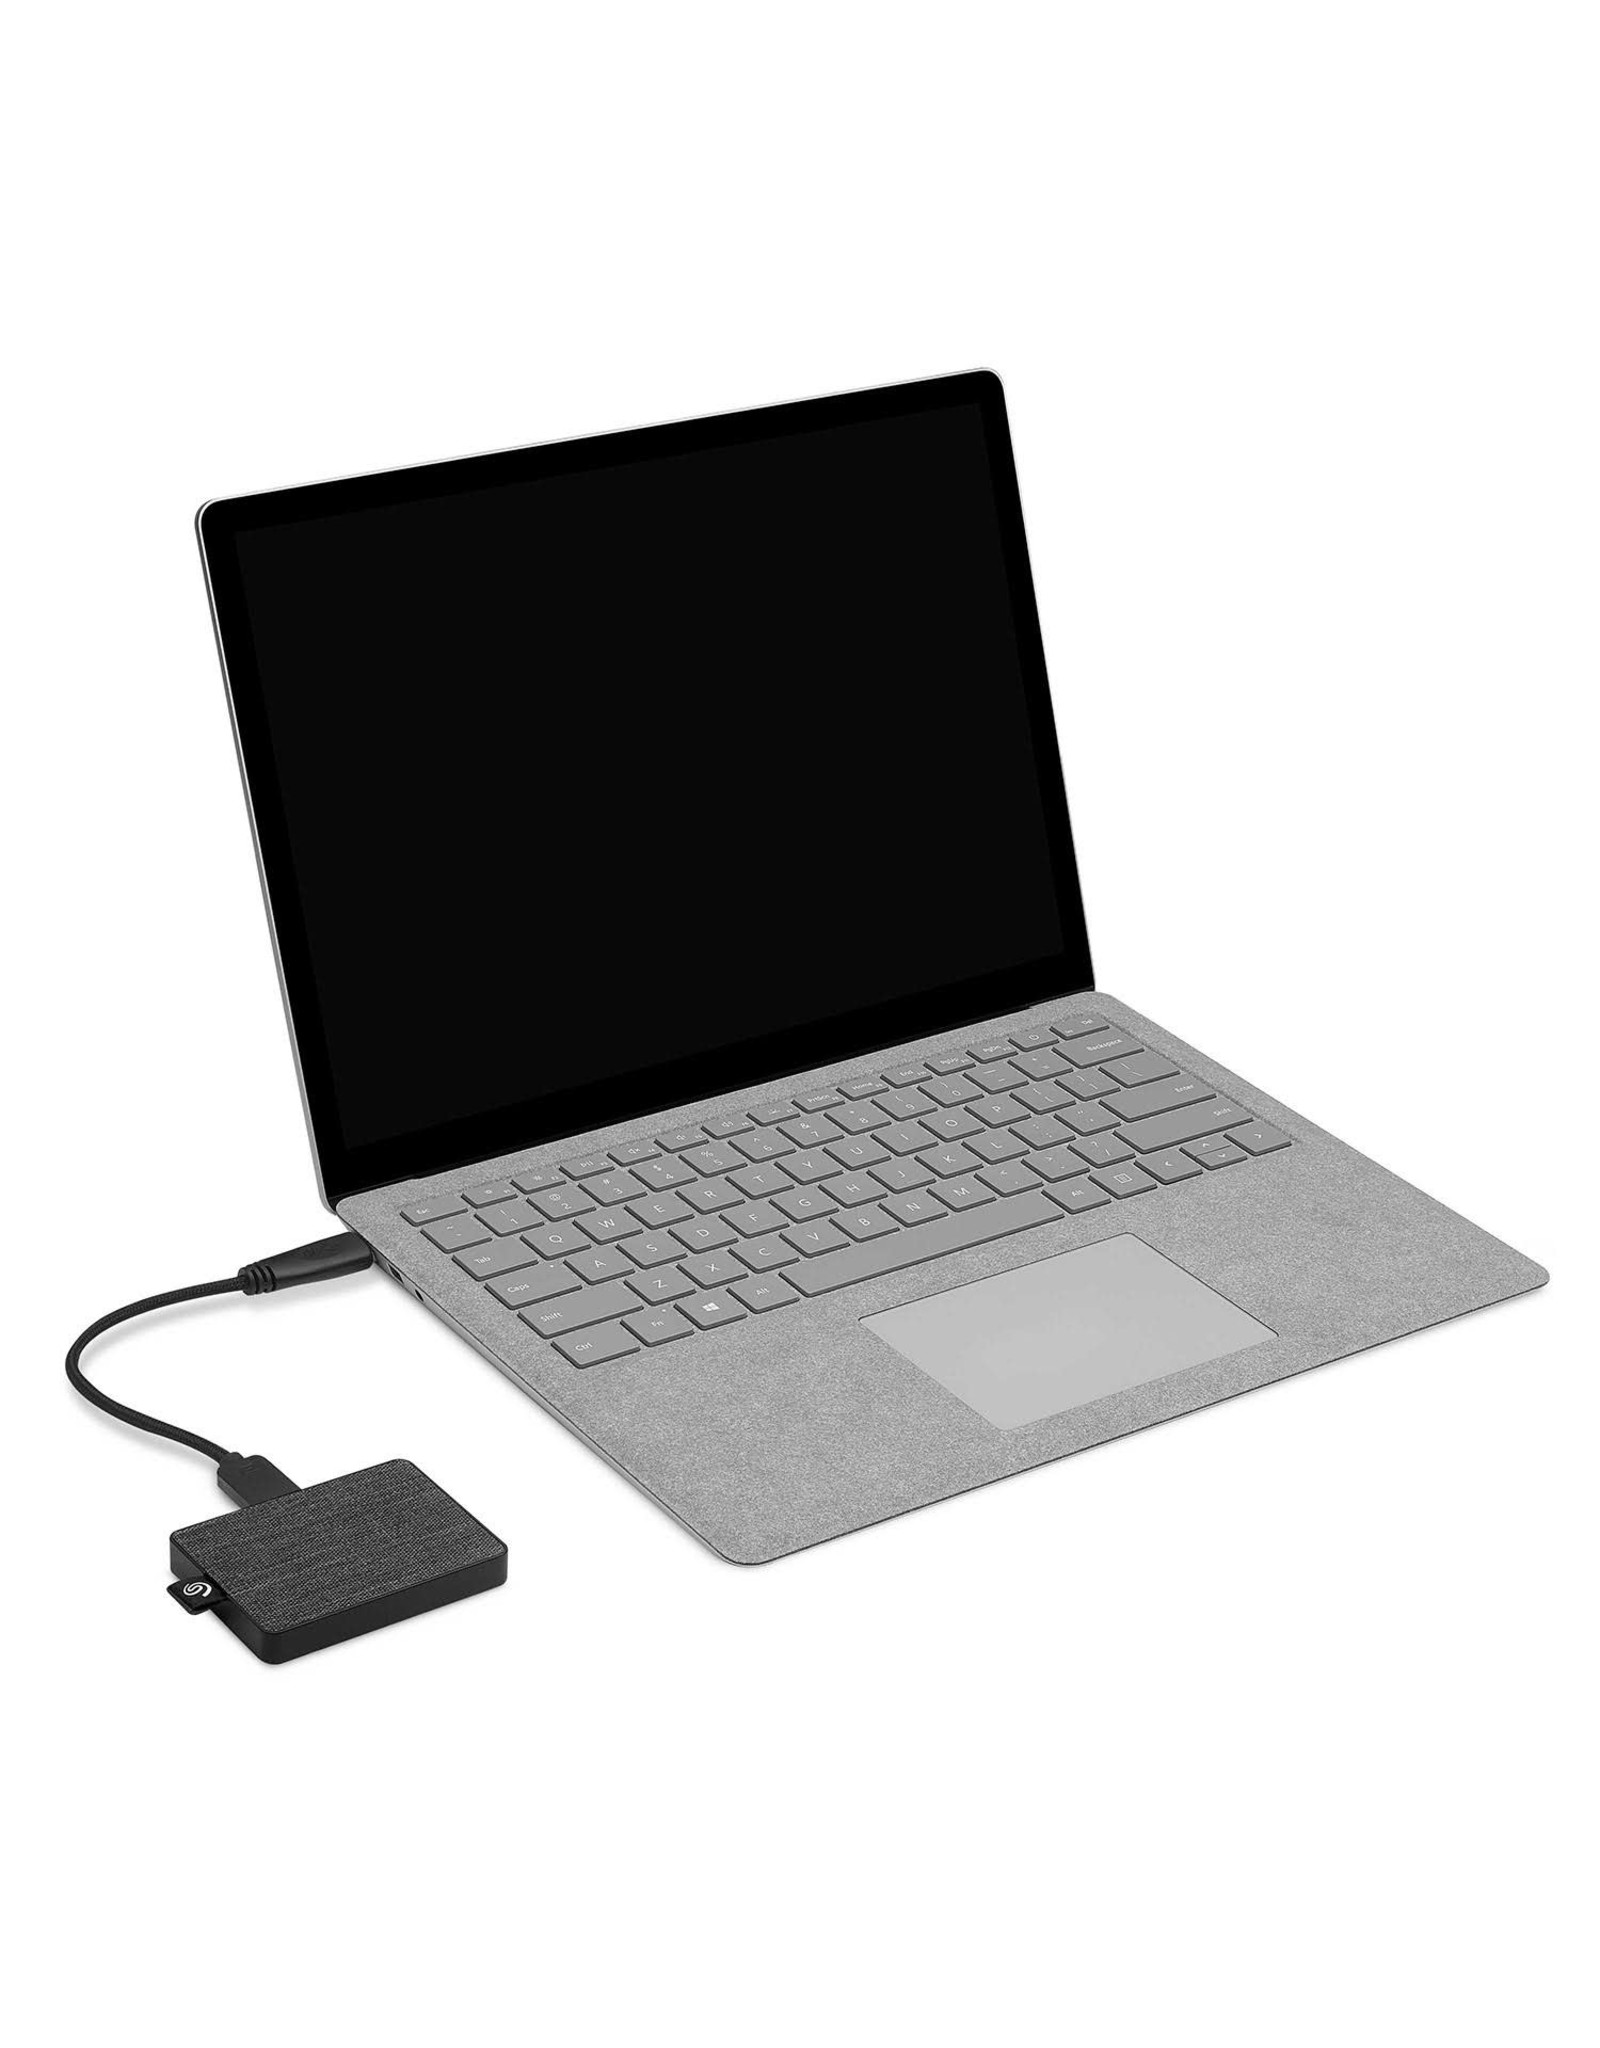 Seagate External Hard Drive - Seagate One Touch SSD 500GB USB 3.0